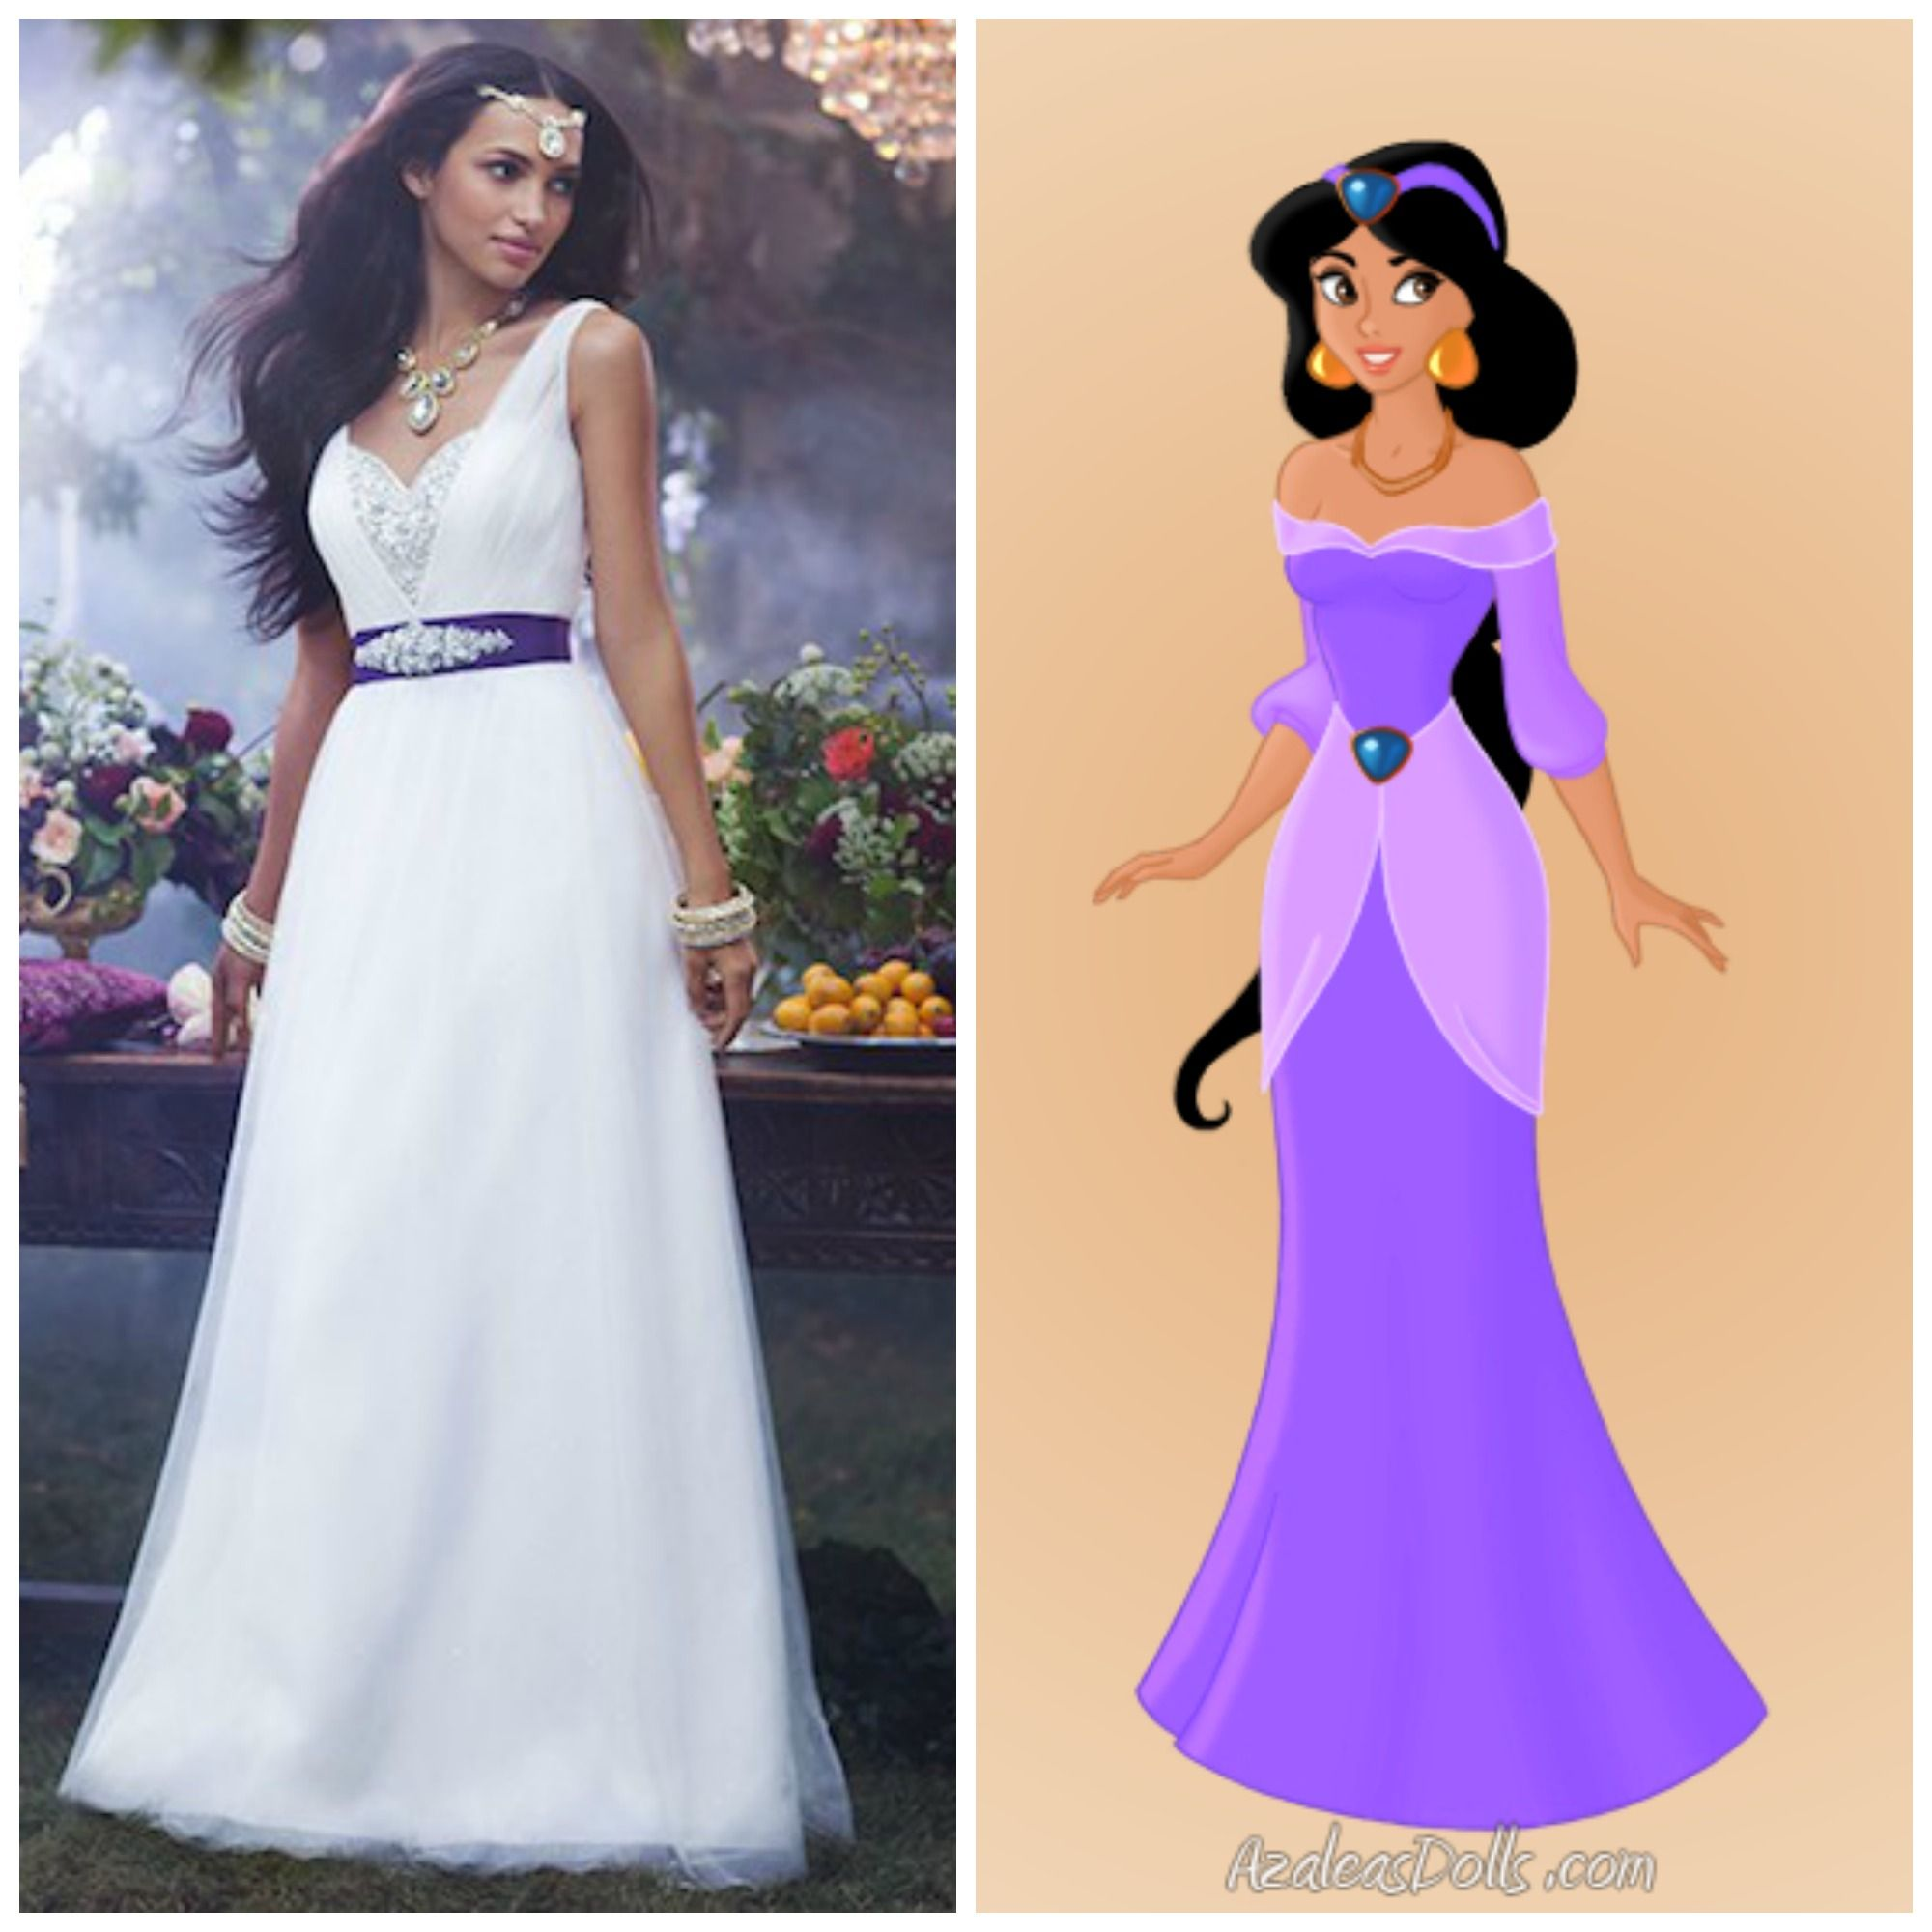 Disney Princess Jasmine Wedding Dress | Disney Wedding Dresses ...